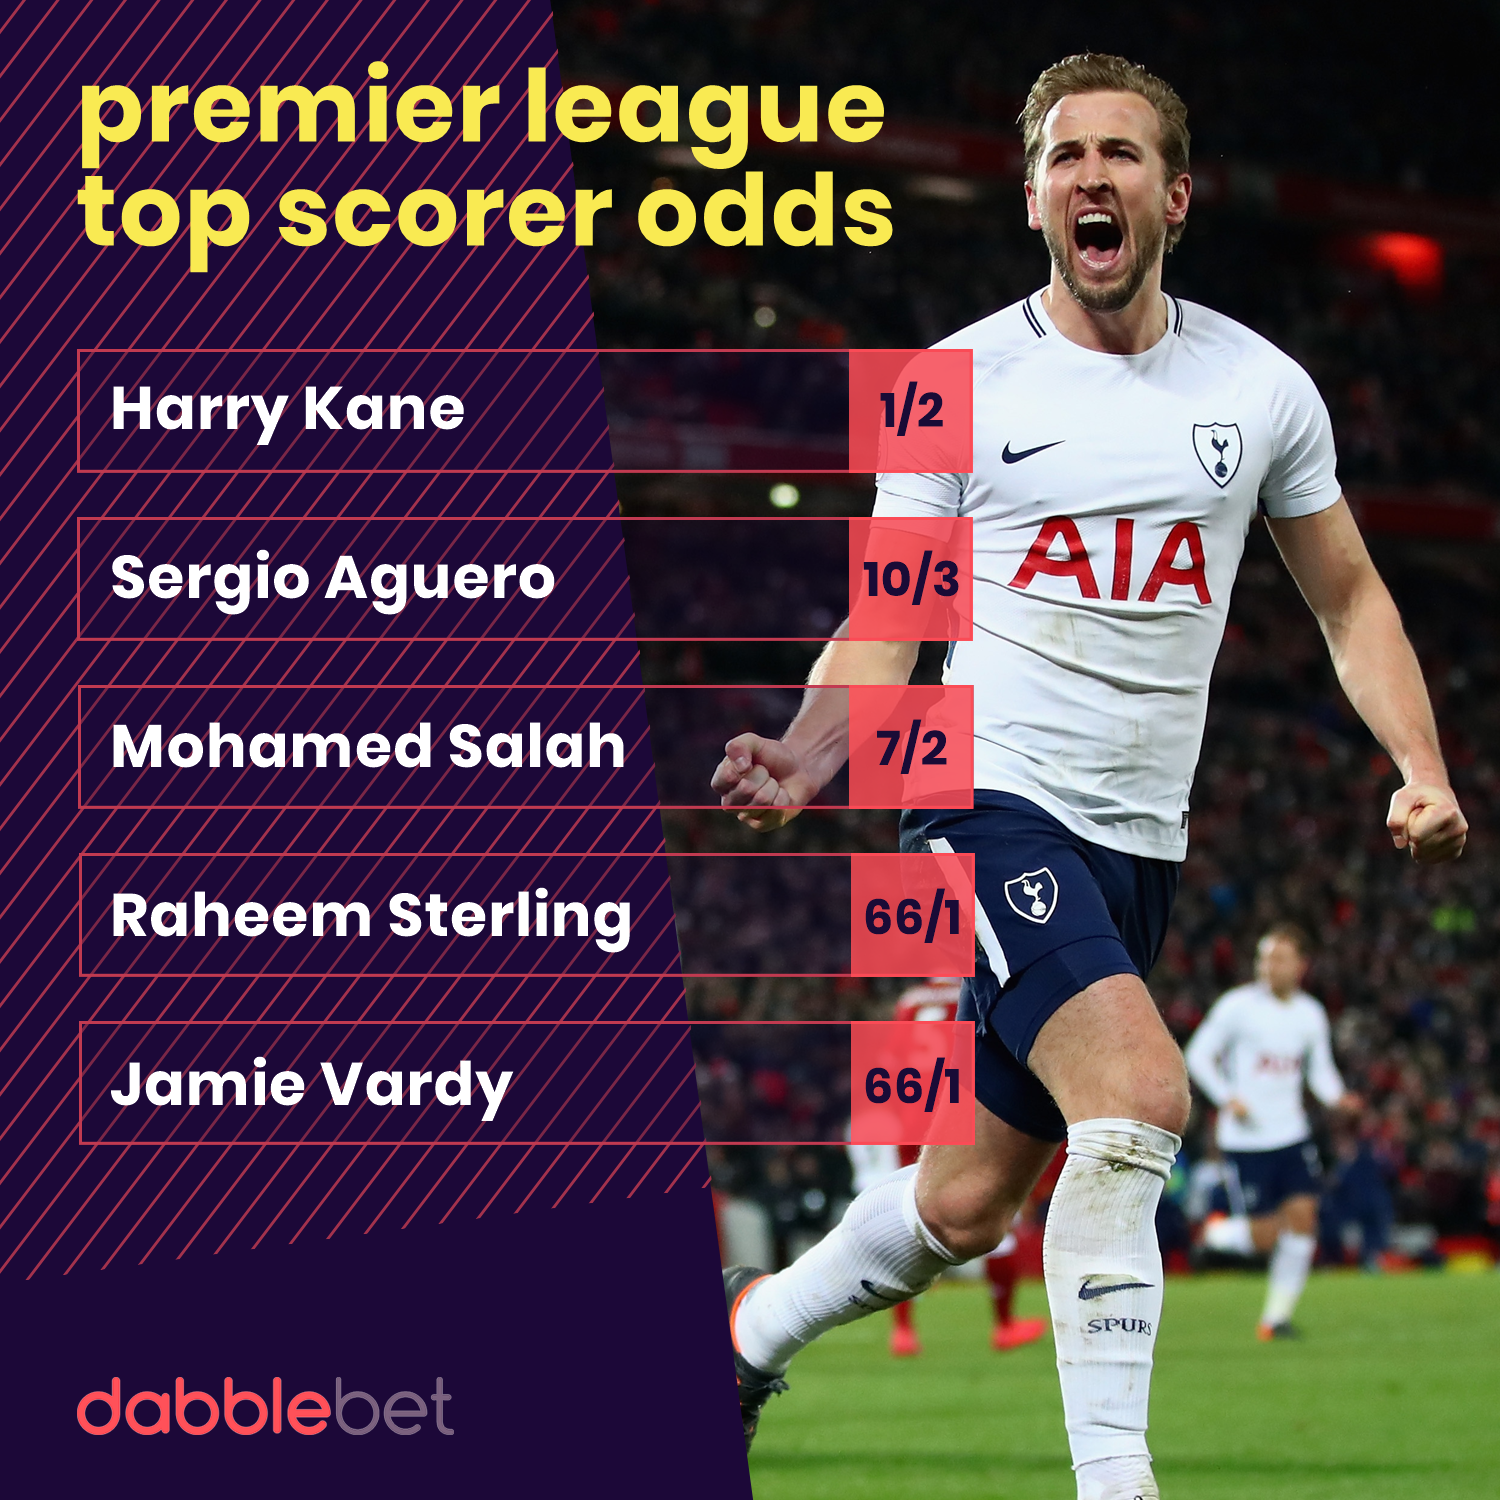 GFX Premier League top scorer odds from dabblebet